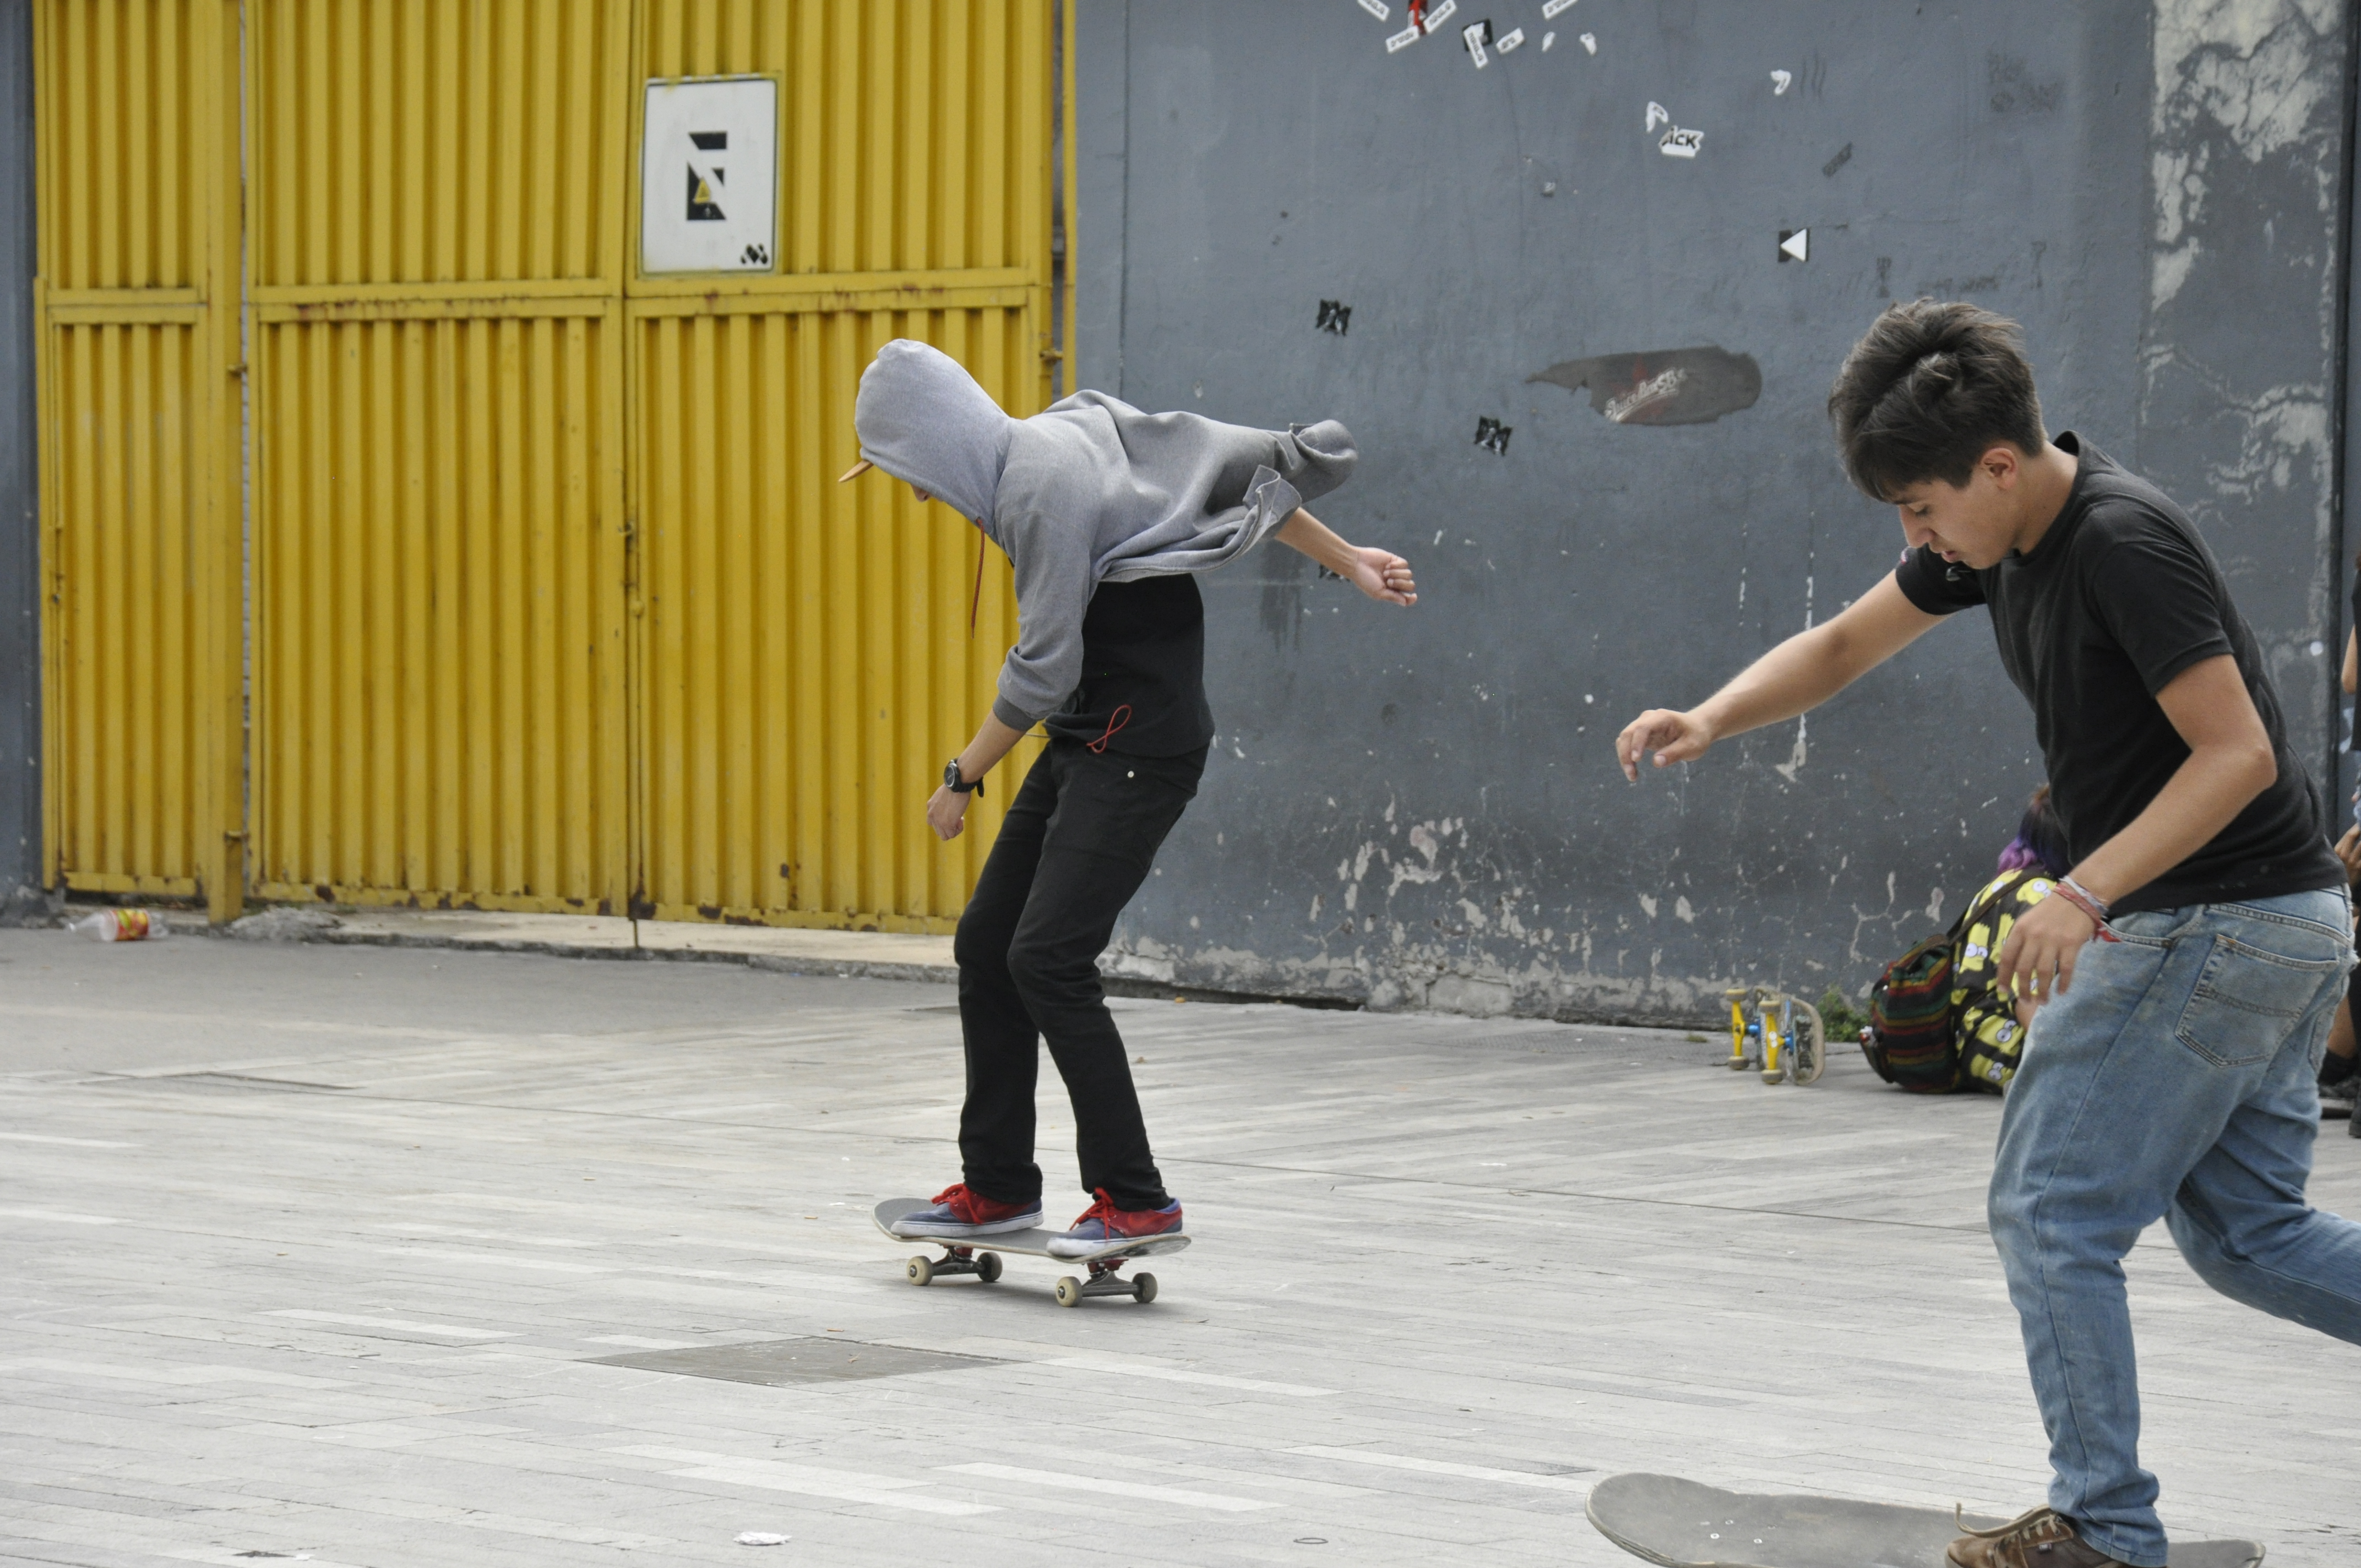 8c93554a3 File Skateboarding at Mexico City - Flip - 033.JPG - Wikimedia Commons